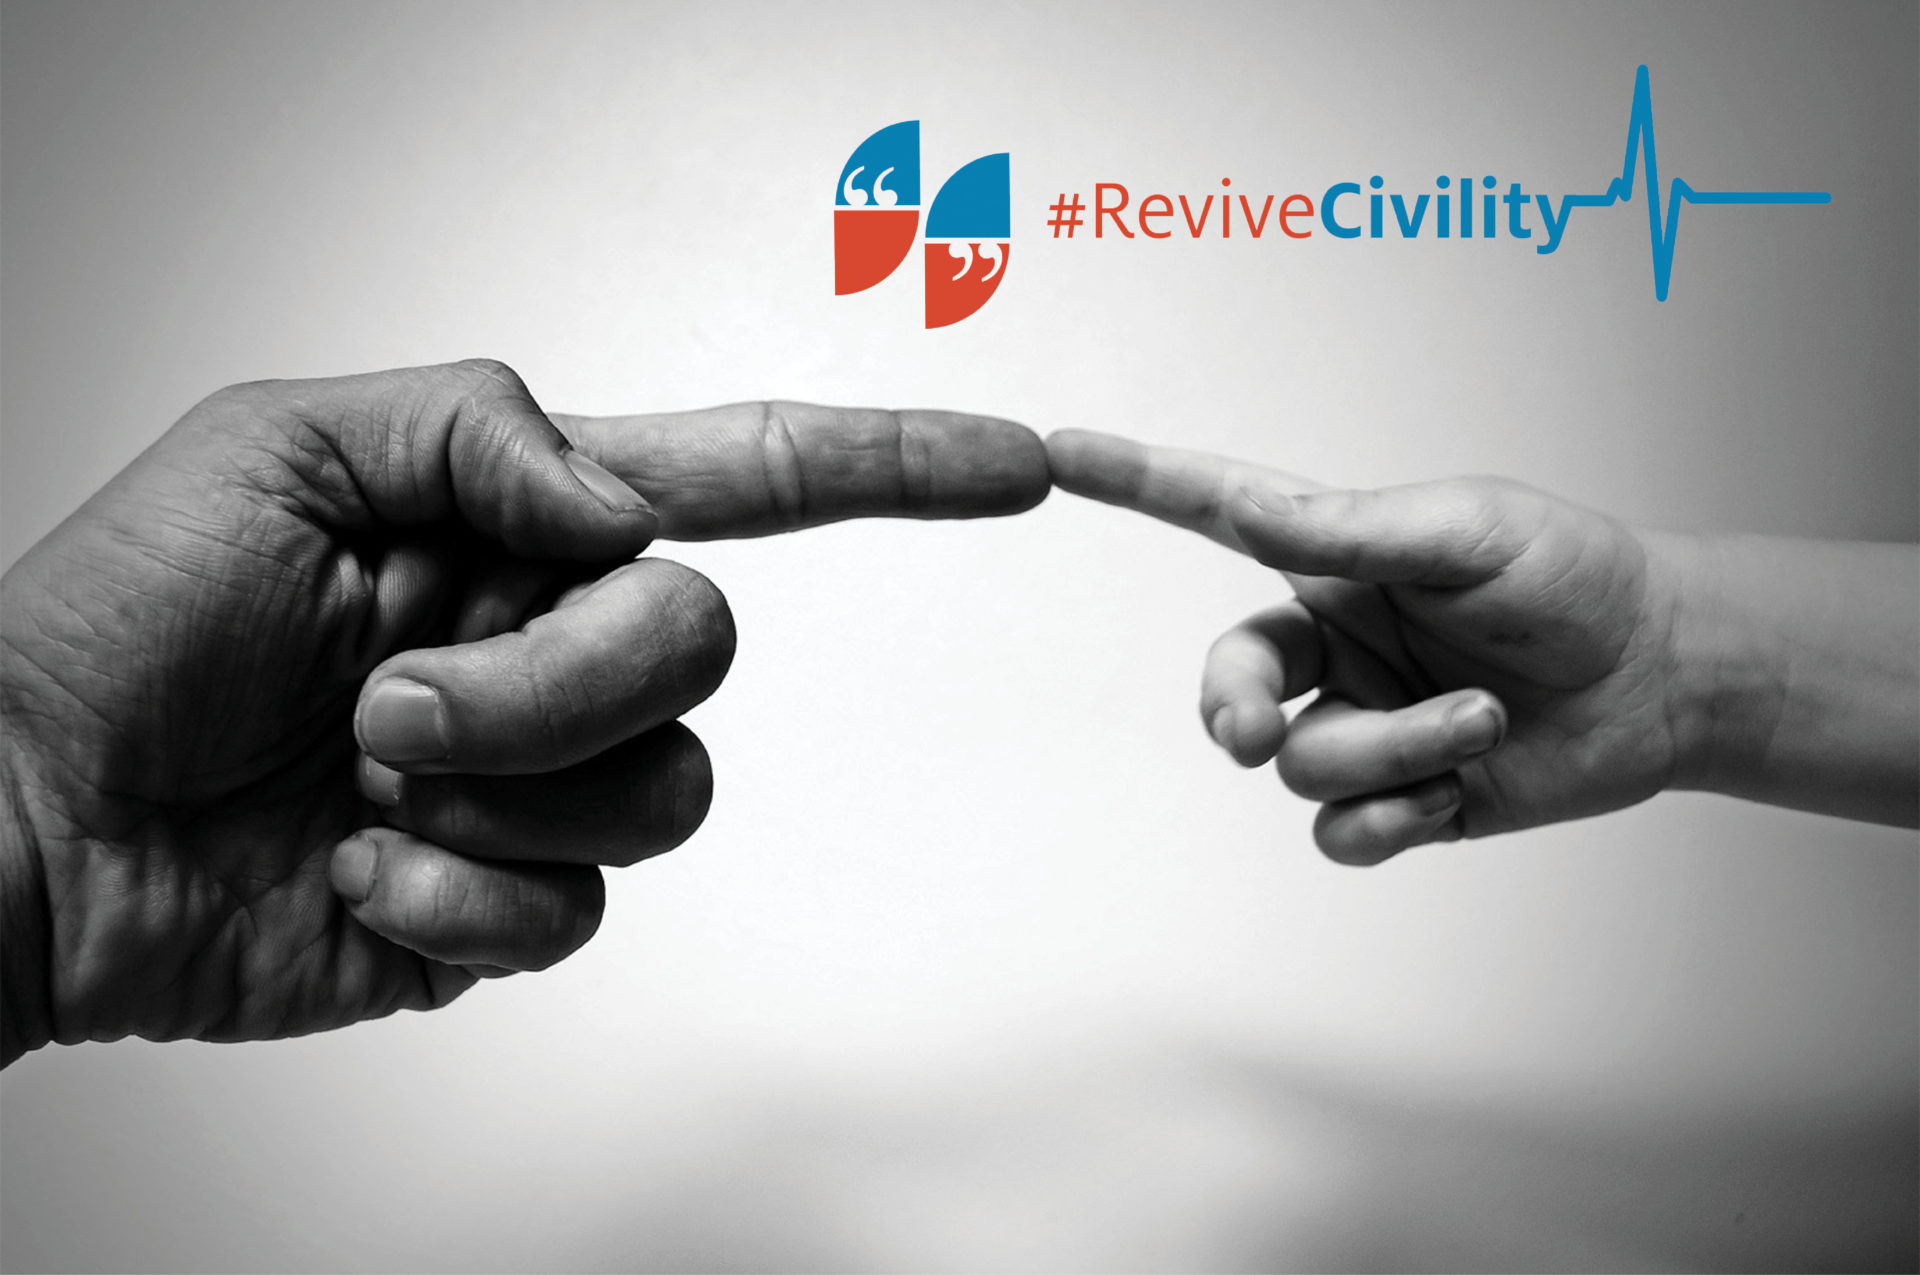 Revive Civility